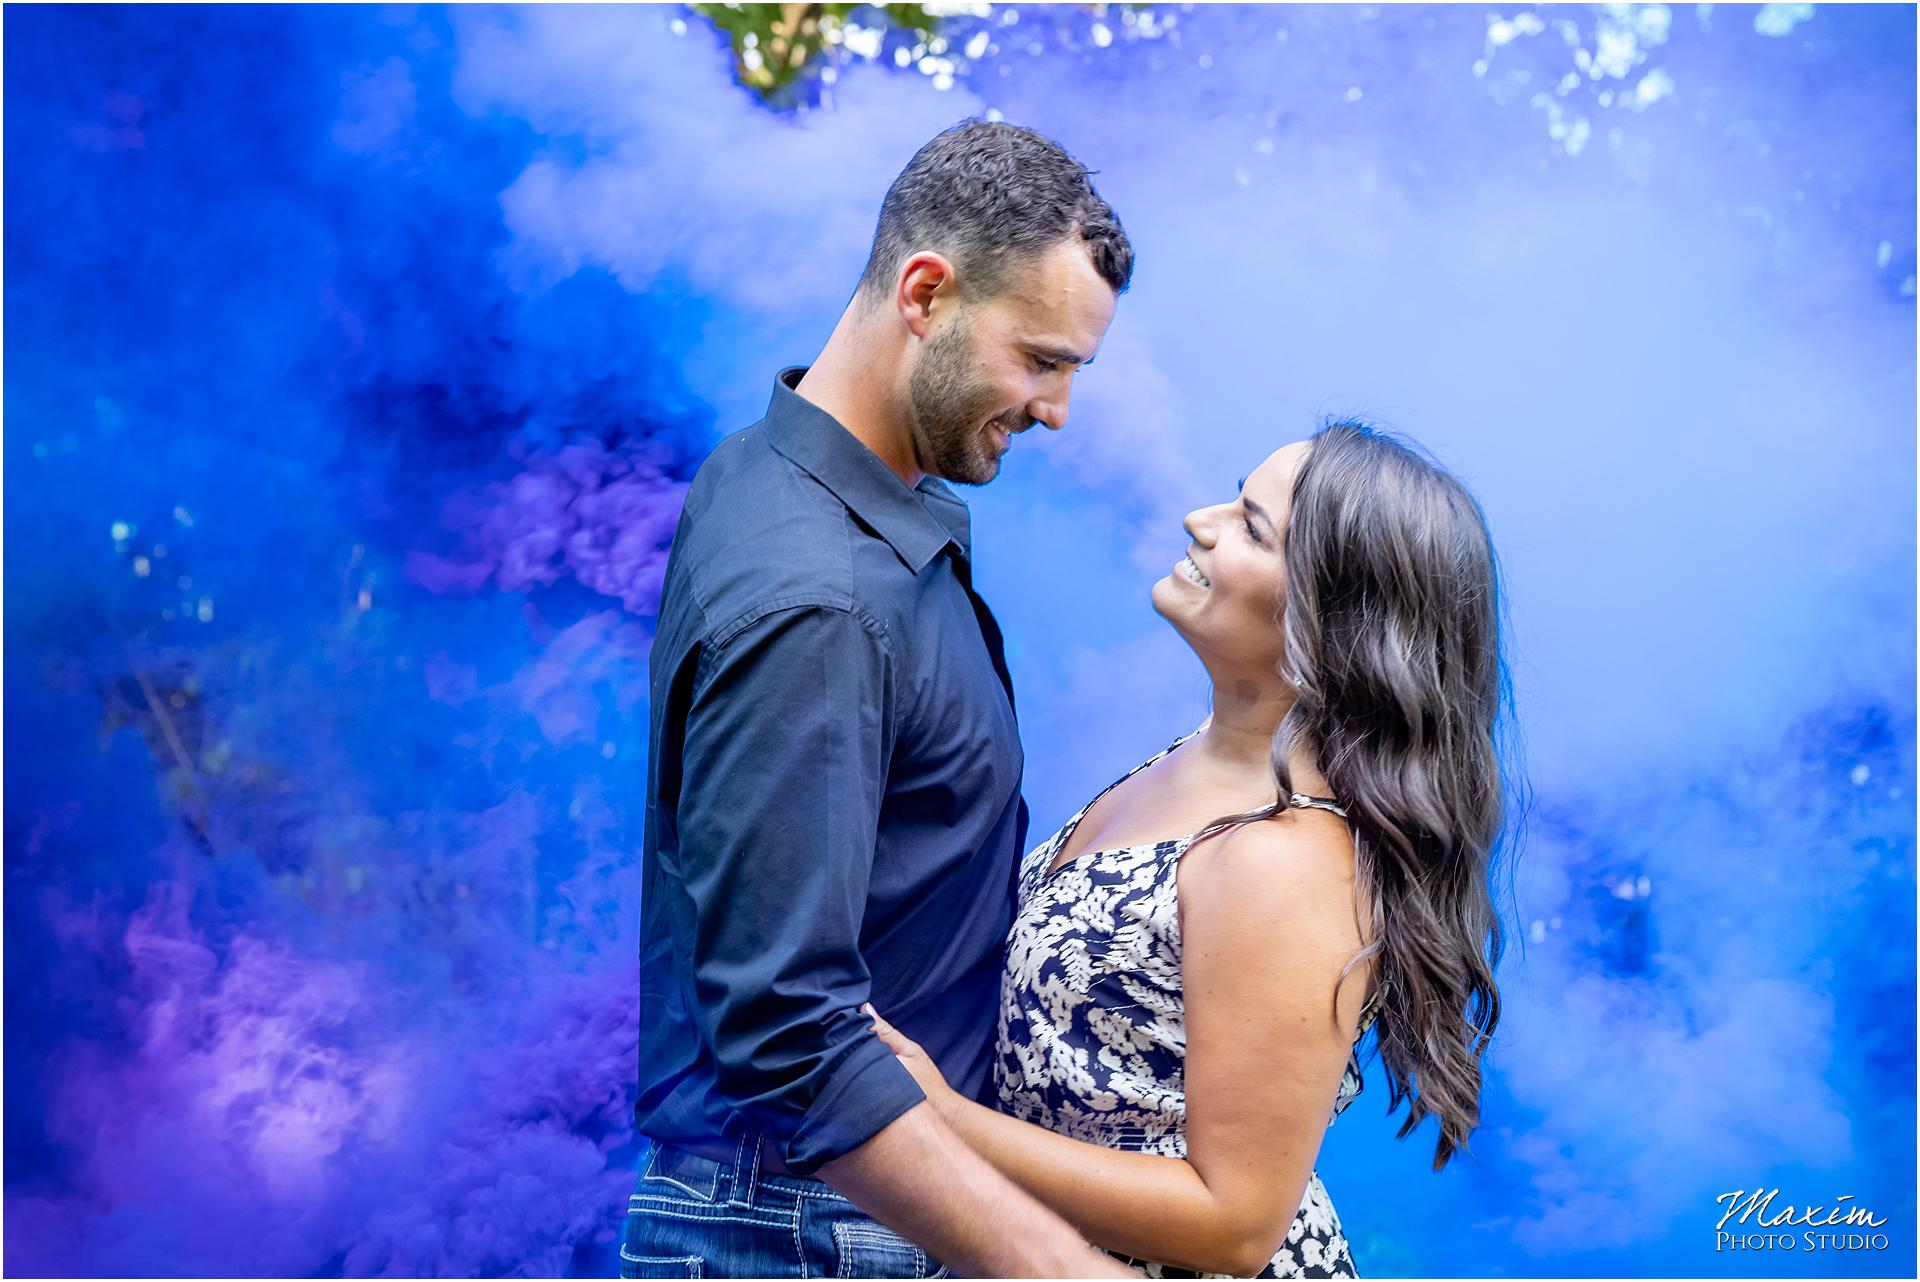 Smoke bombs springboro Ohio engagement